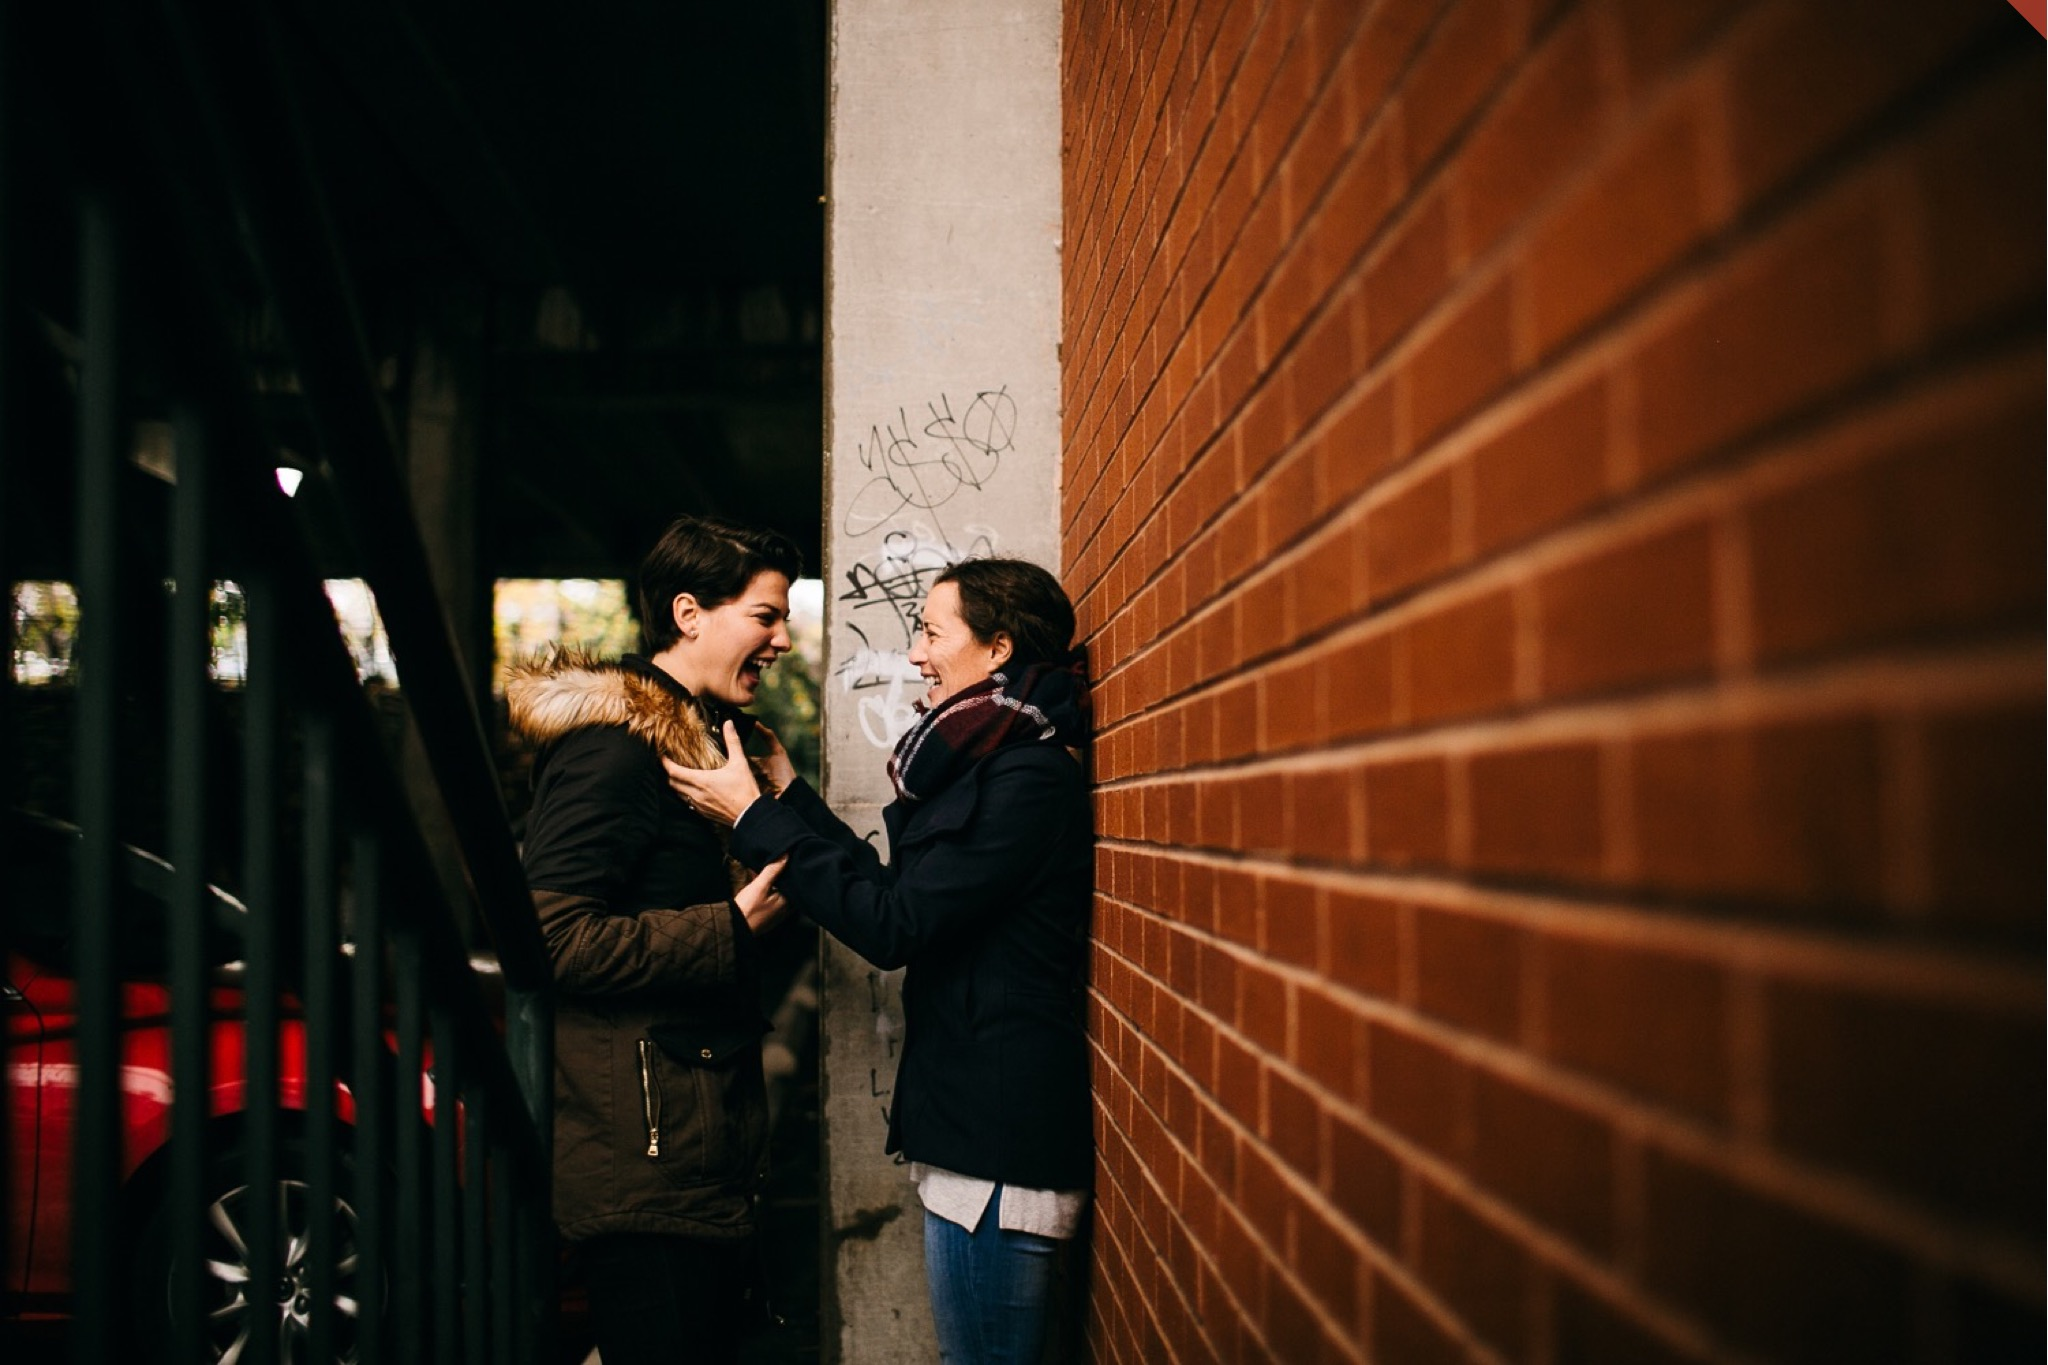 A lesbian couple embraces against a brick wall in a parking garage.